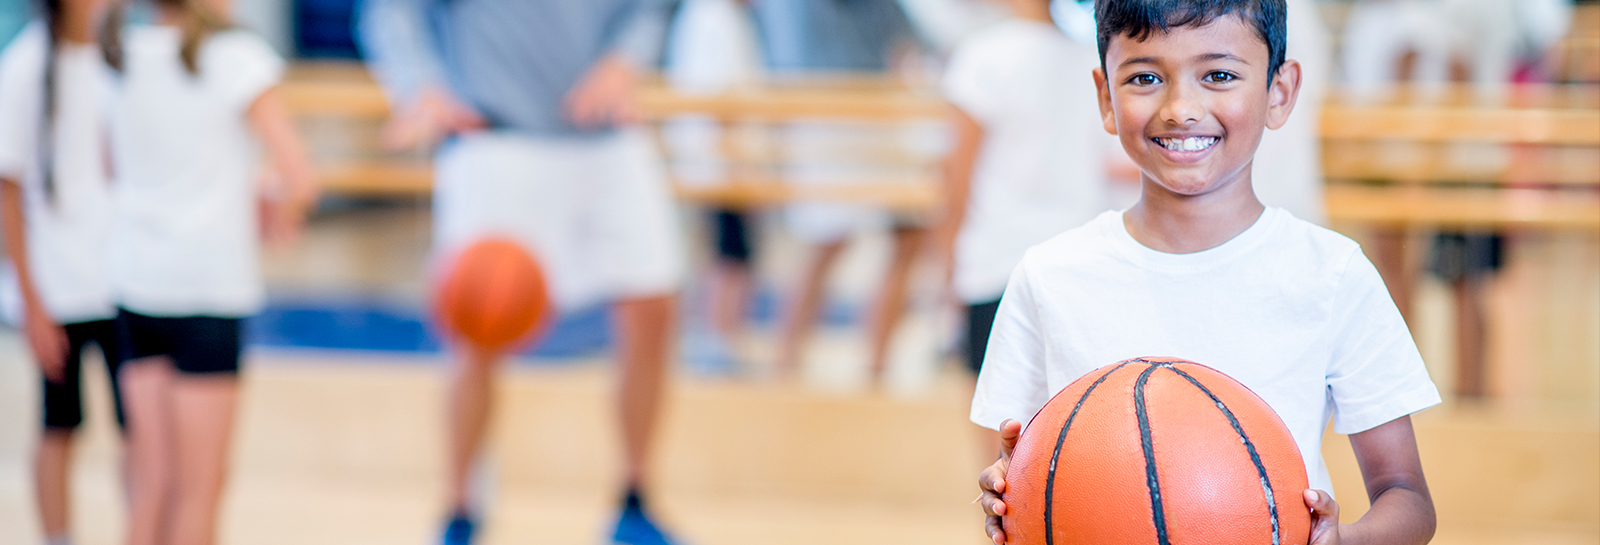 Registration is underway for Youth Basketball